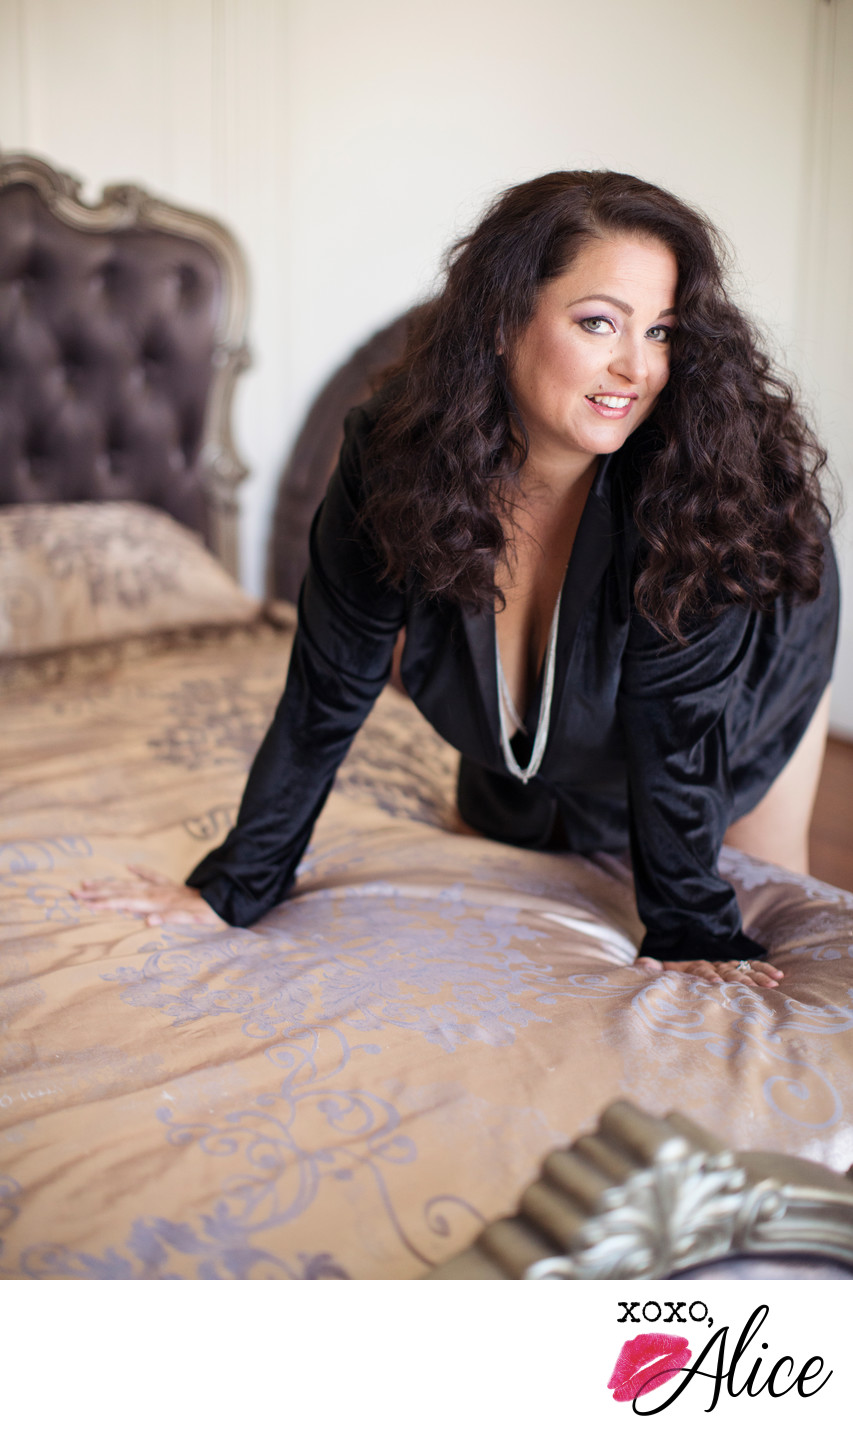 boudoir photography in missouri for classy flirty photo